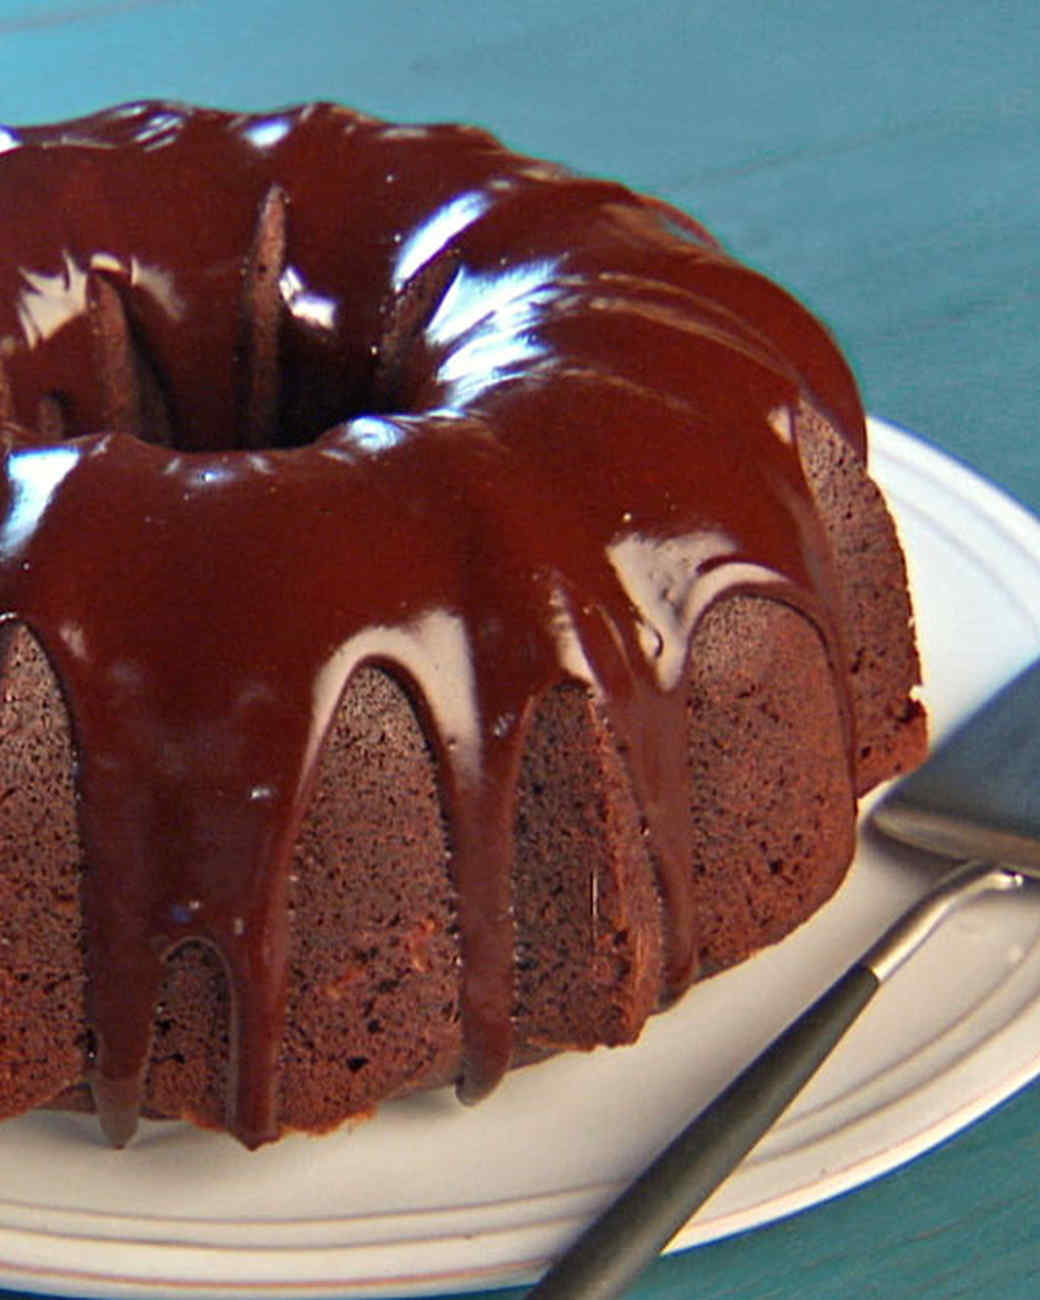 chocolate wedding cake recipe using cake mix dolly s chocolate bundt cake recipe amp martha stewart 12787